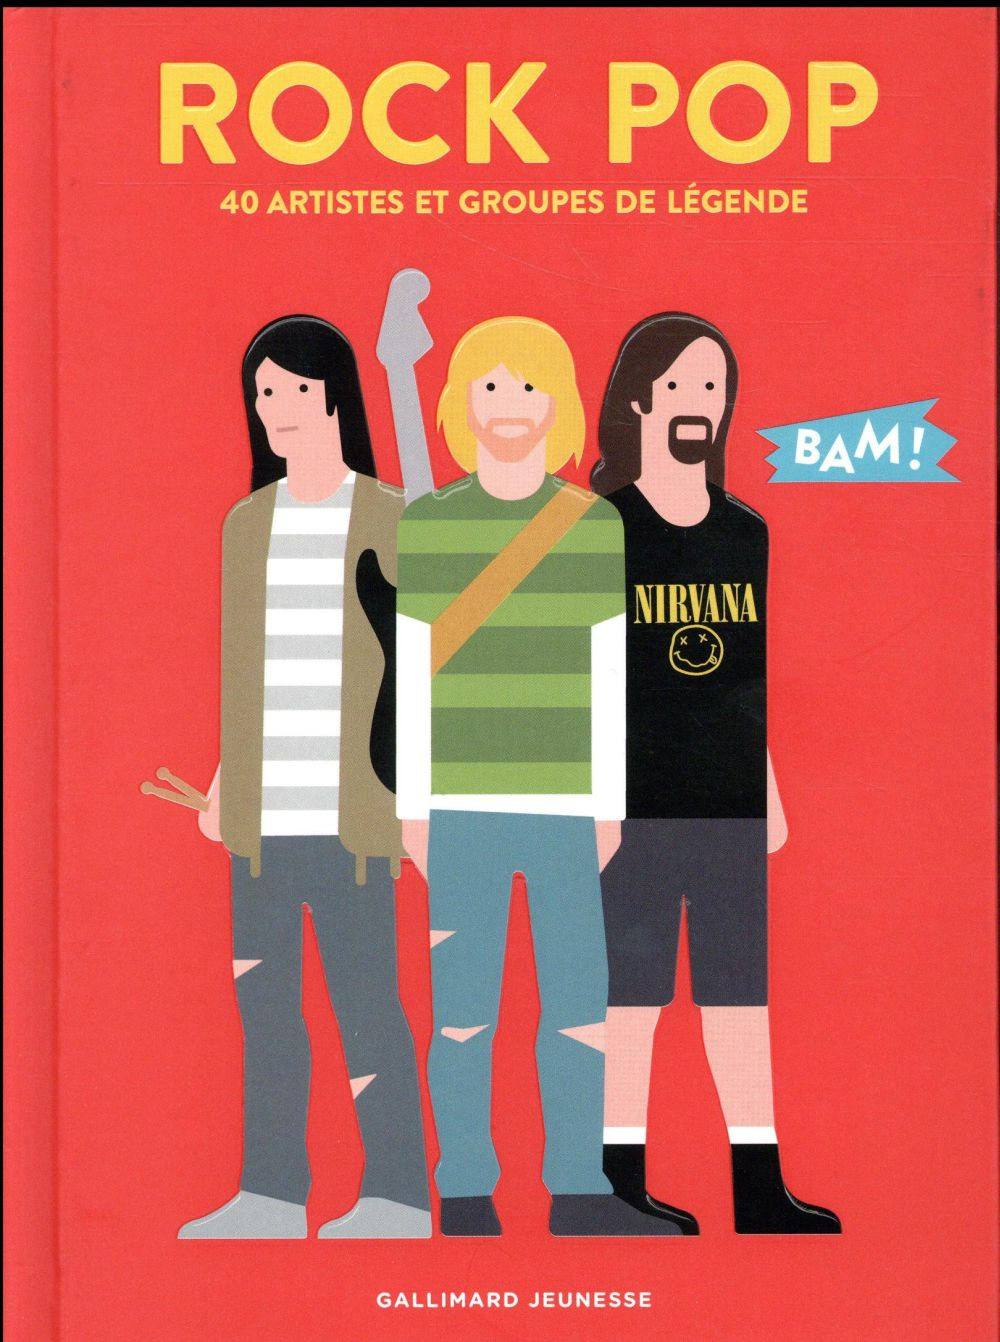 ROCK POP - 40 ARTISTES ET GROUPES DE LEGENDE